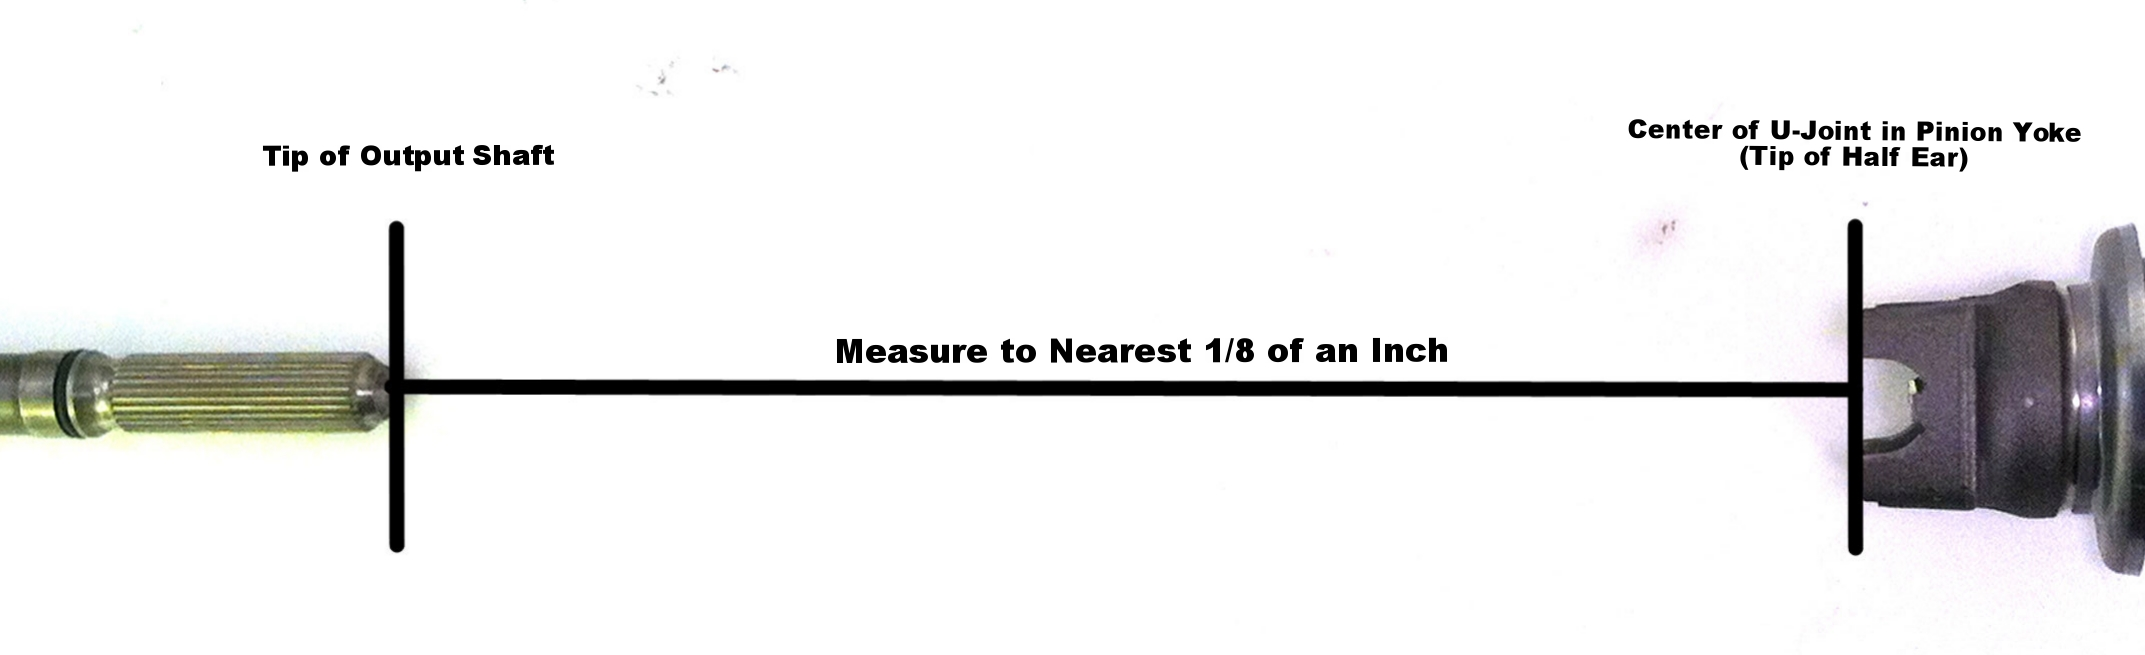 Measurement: Tip of Output Shaft to Center of U-Joint